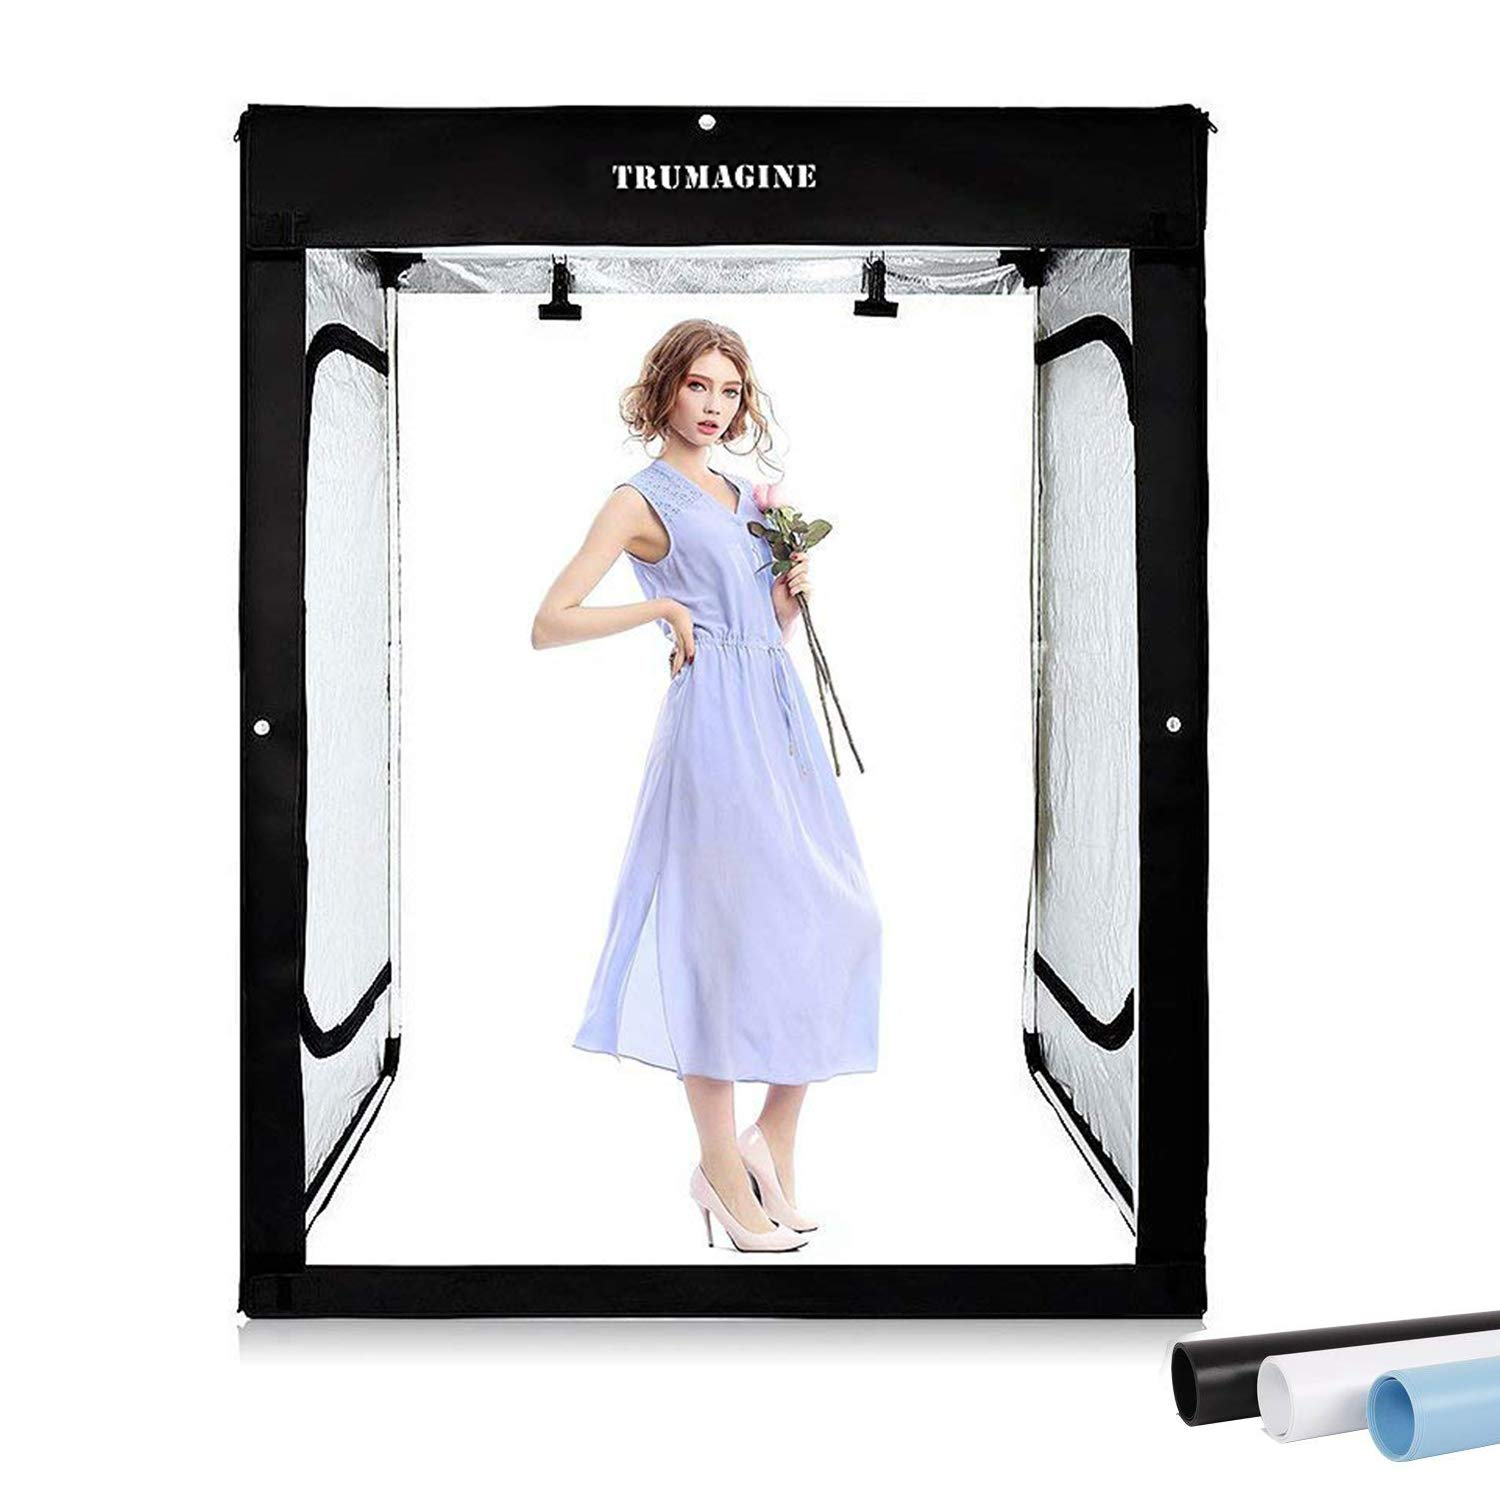 47x39x78 inch Professional Photography LED Studio Large Lightbox Dimmable Photo Video Continuous Lighting Cube Shooting Tent Kit with 3 Colors Backdrops and Carrying Bag